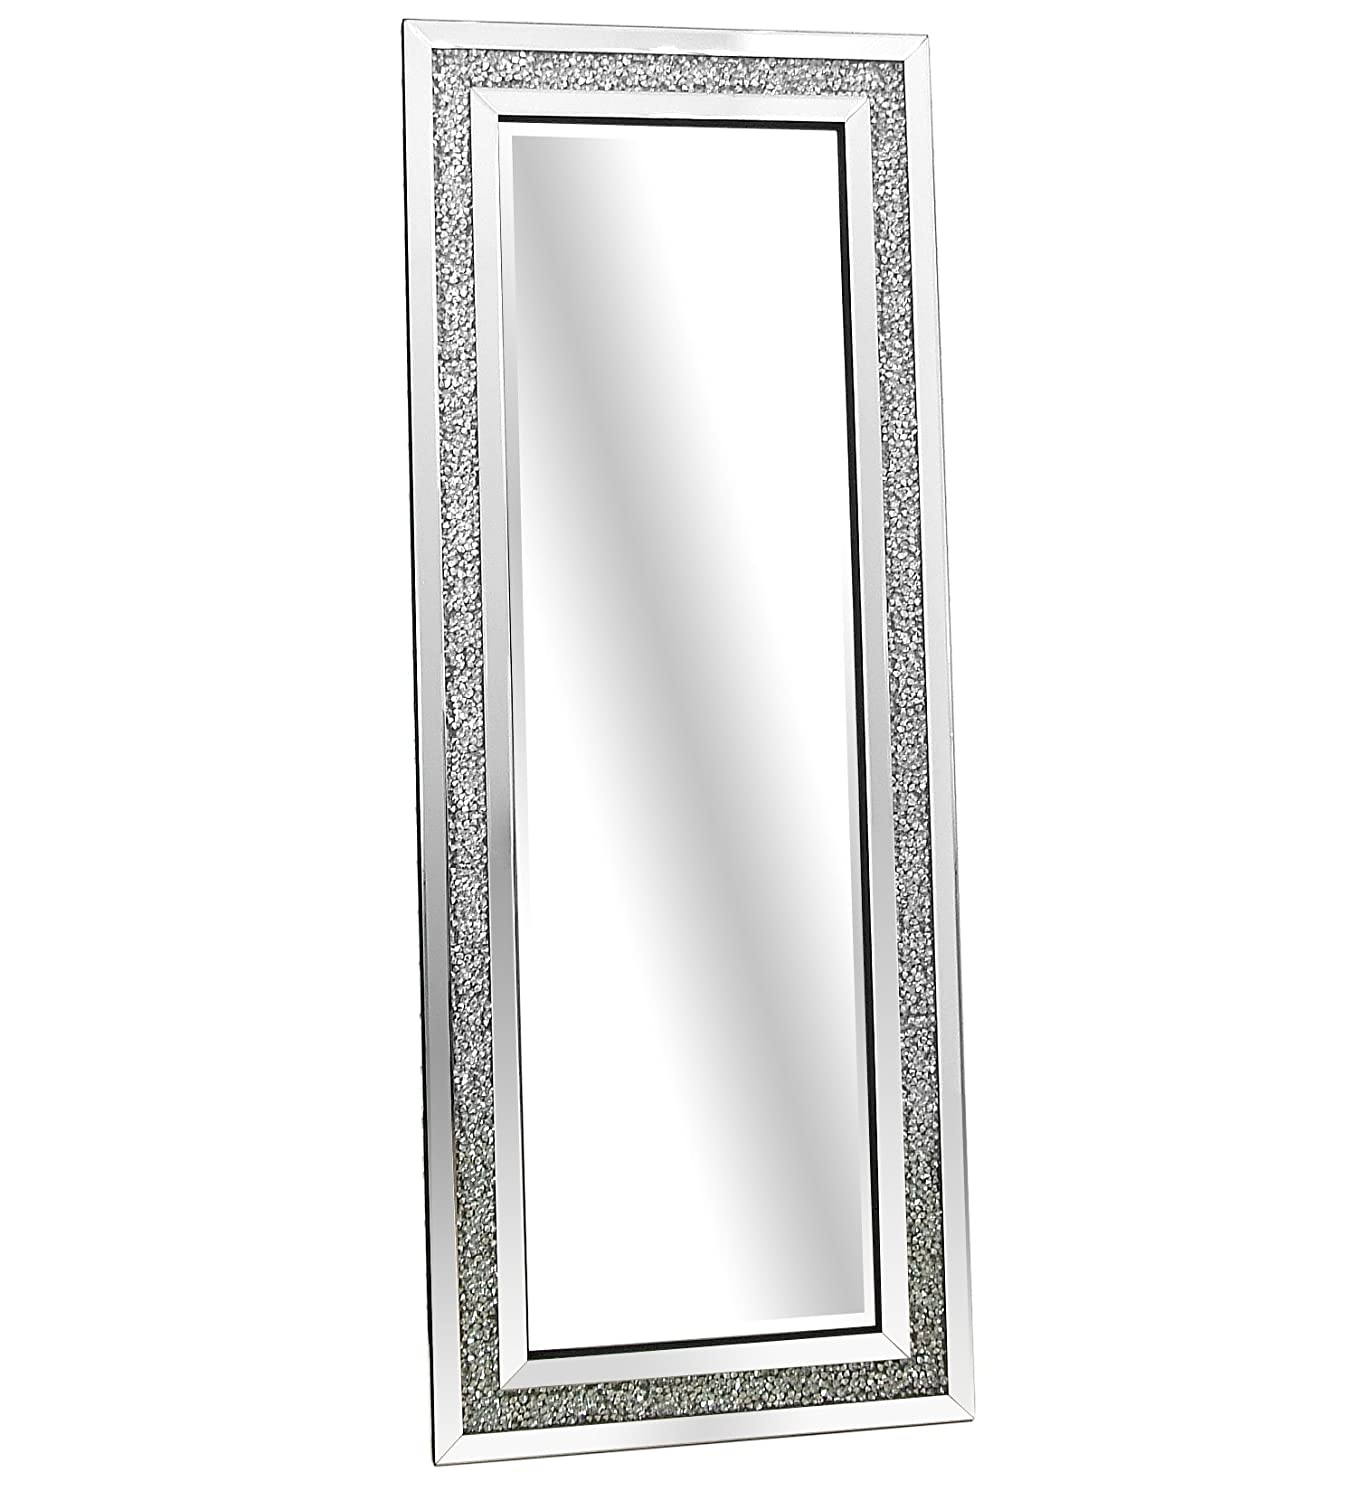 Barcelona Trading Gatsby Crystal Glass Framed Full Length Bevelled Leaner Wall Mirror 71